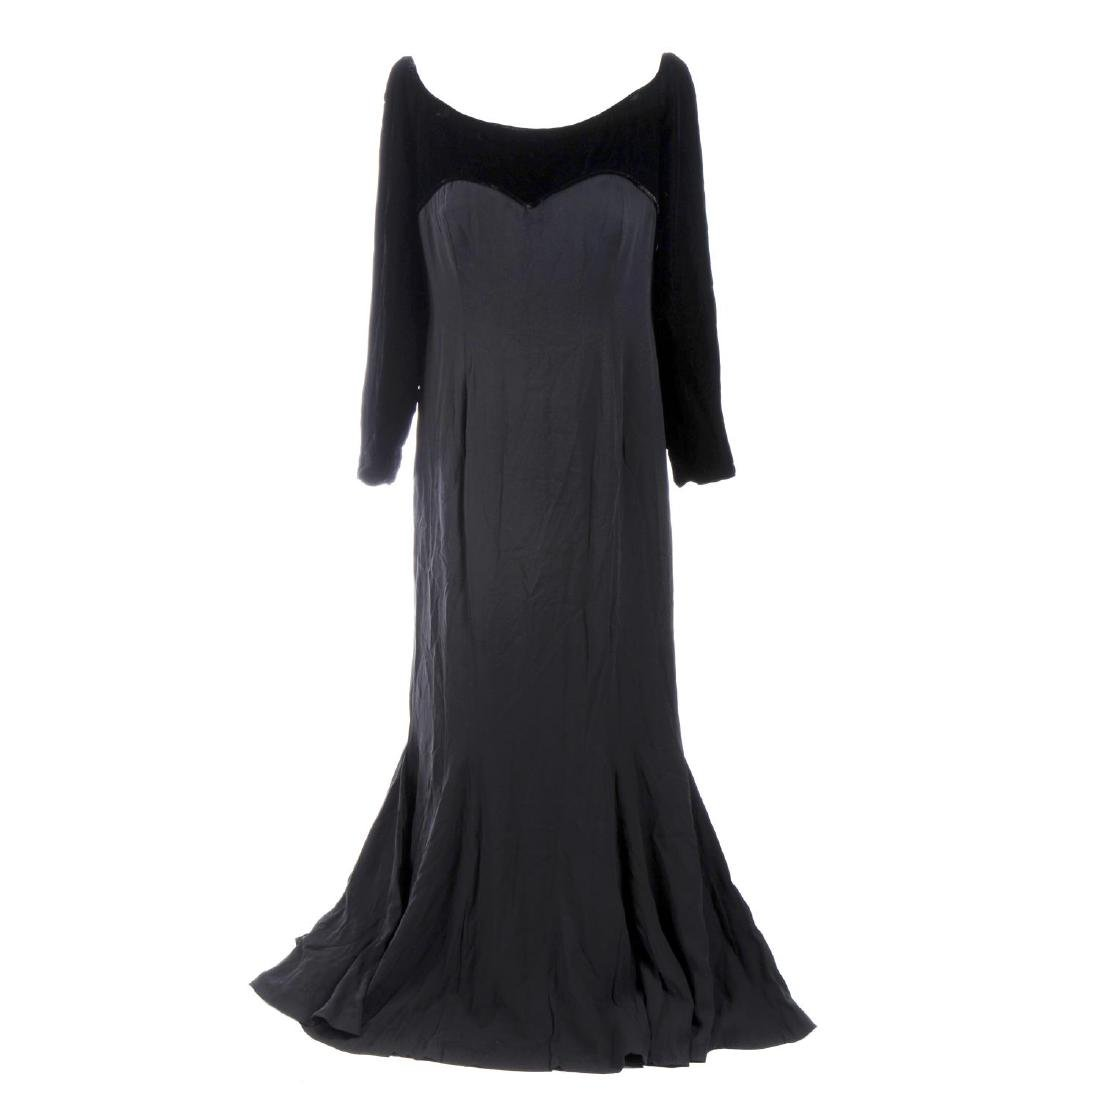 CATHERINE WALKER - a velvet dress. The black pure silk